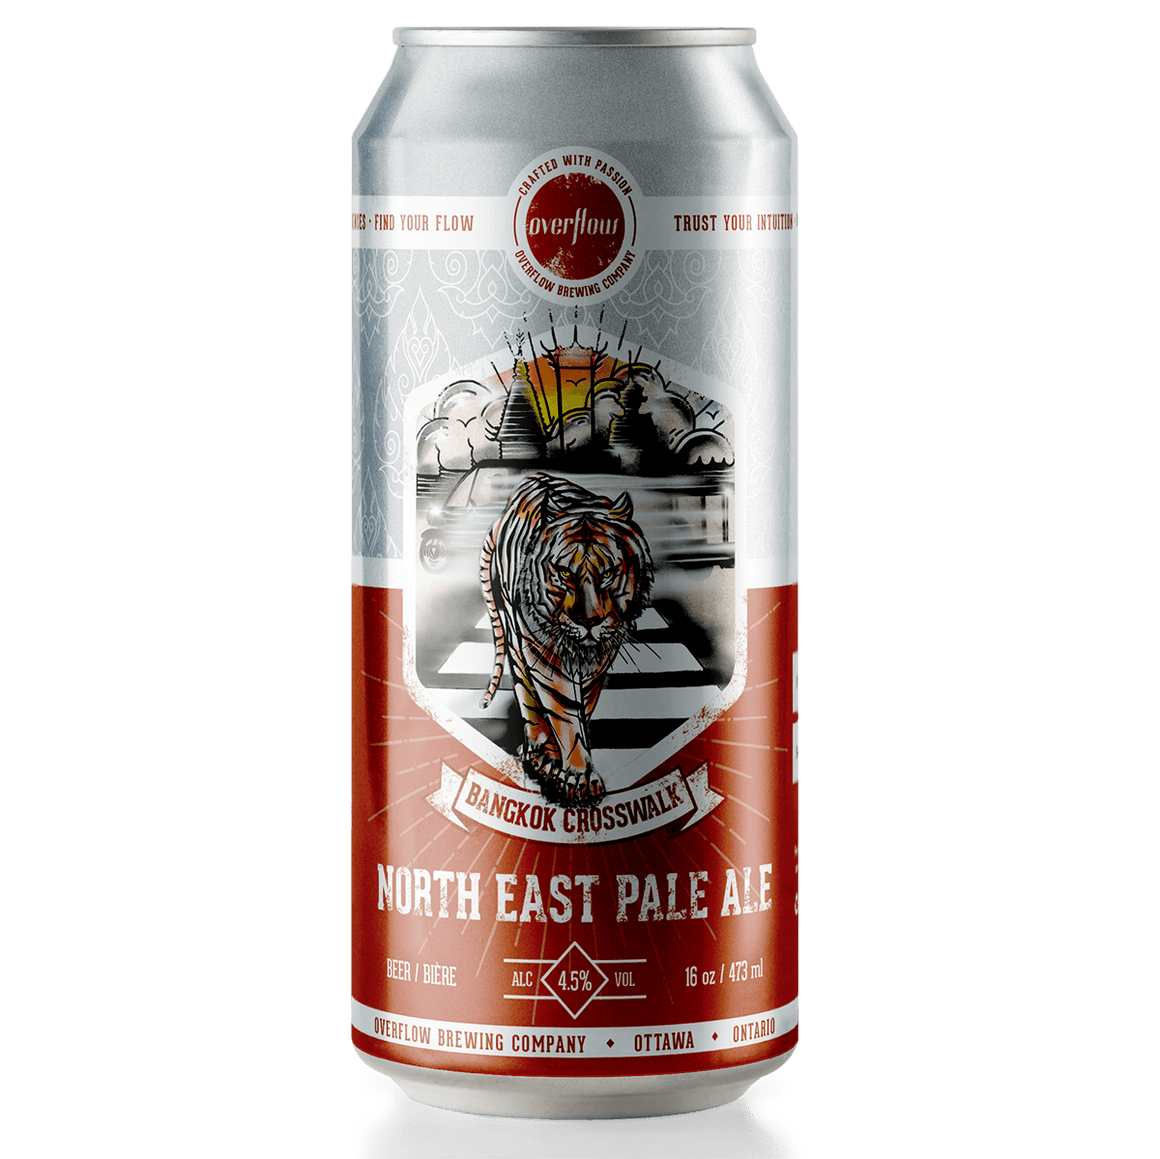 Bangkok Crosswalk - North East Pale Ale